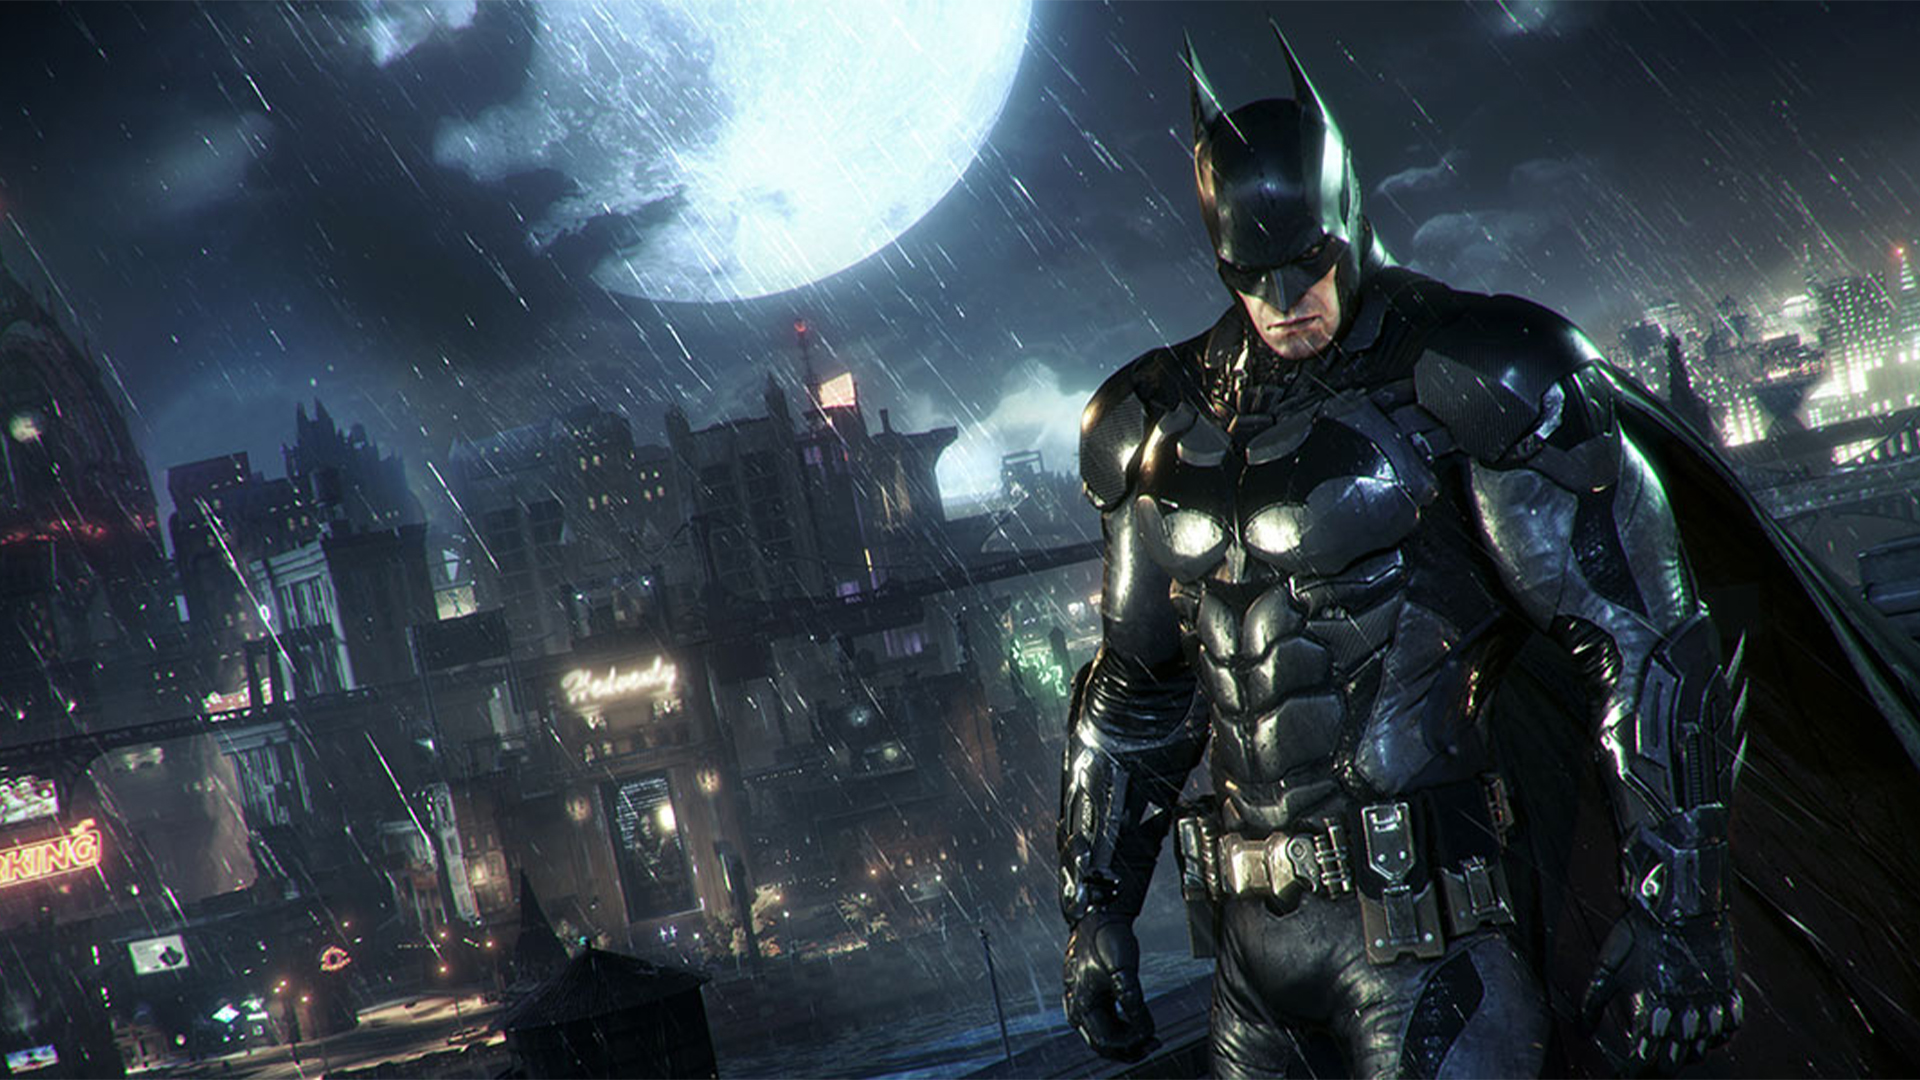 10 Batman Games to Play Before the Release of Gotham Knights